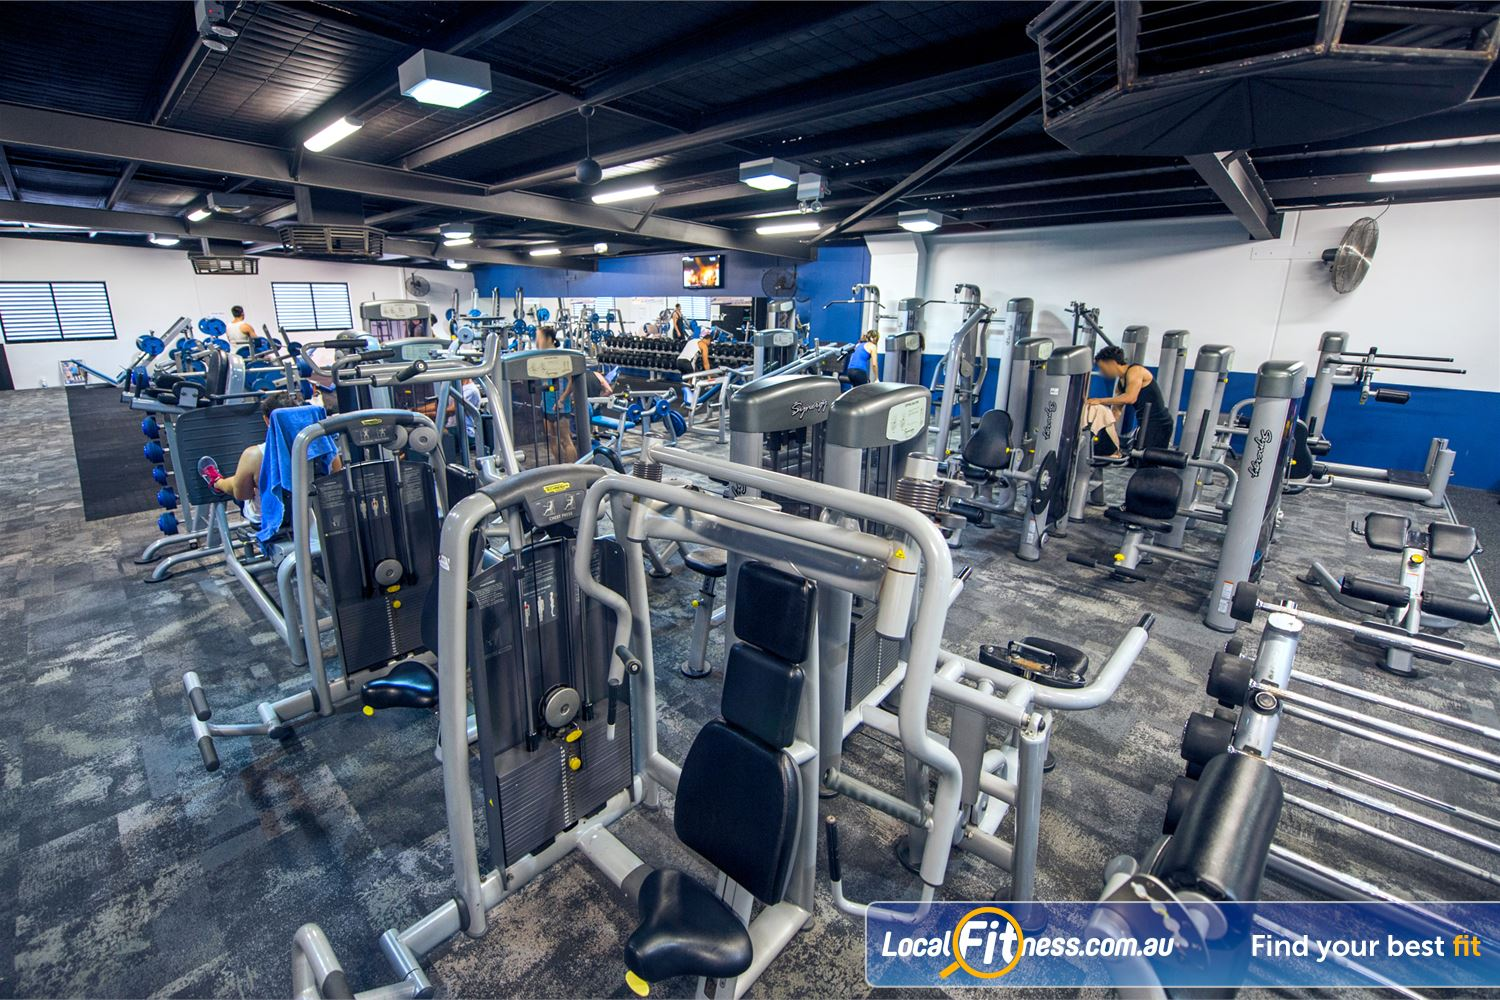 Goodlife Health Clubs Near Inglewood The Mount Lawley gym includes an extensive selection of equipment from Technogym.